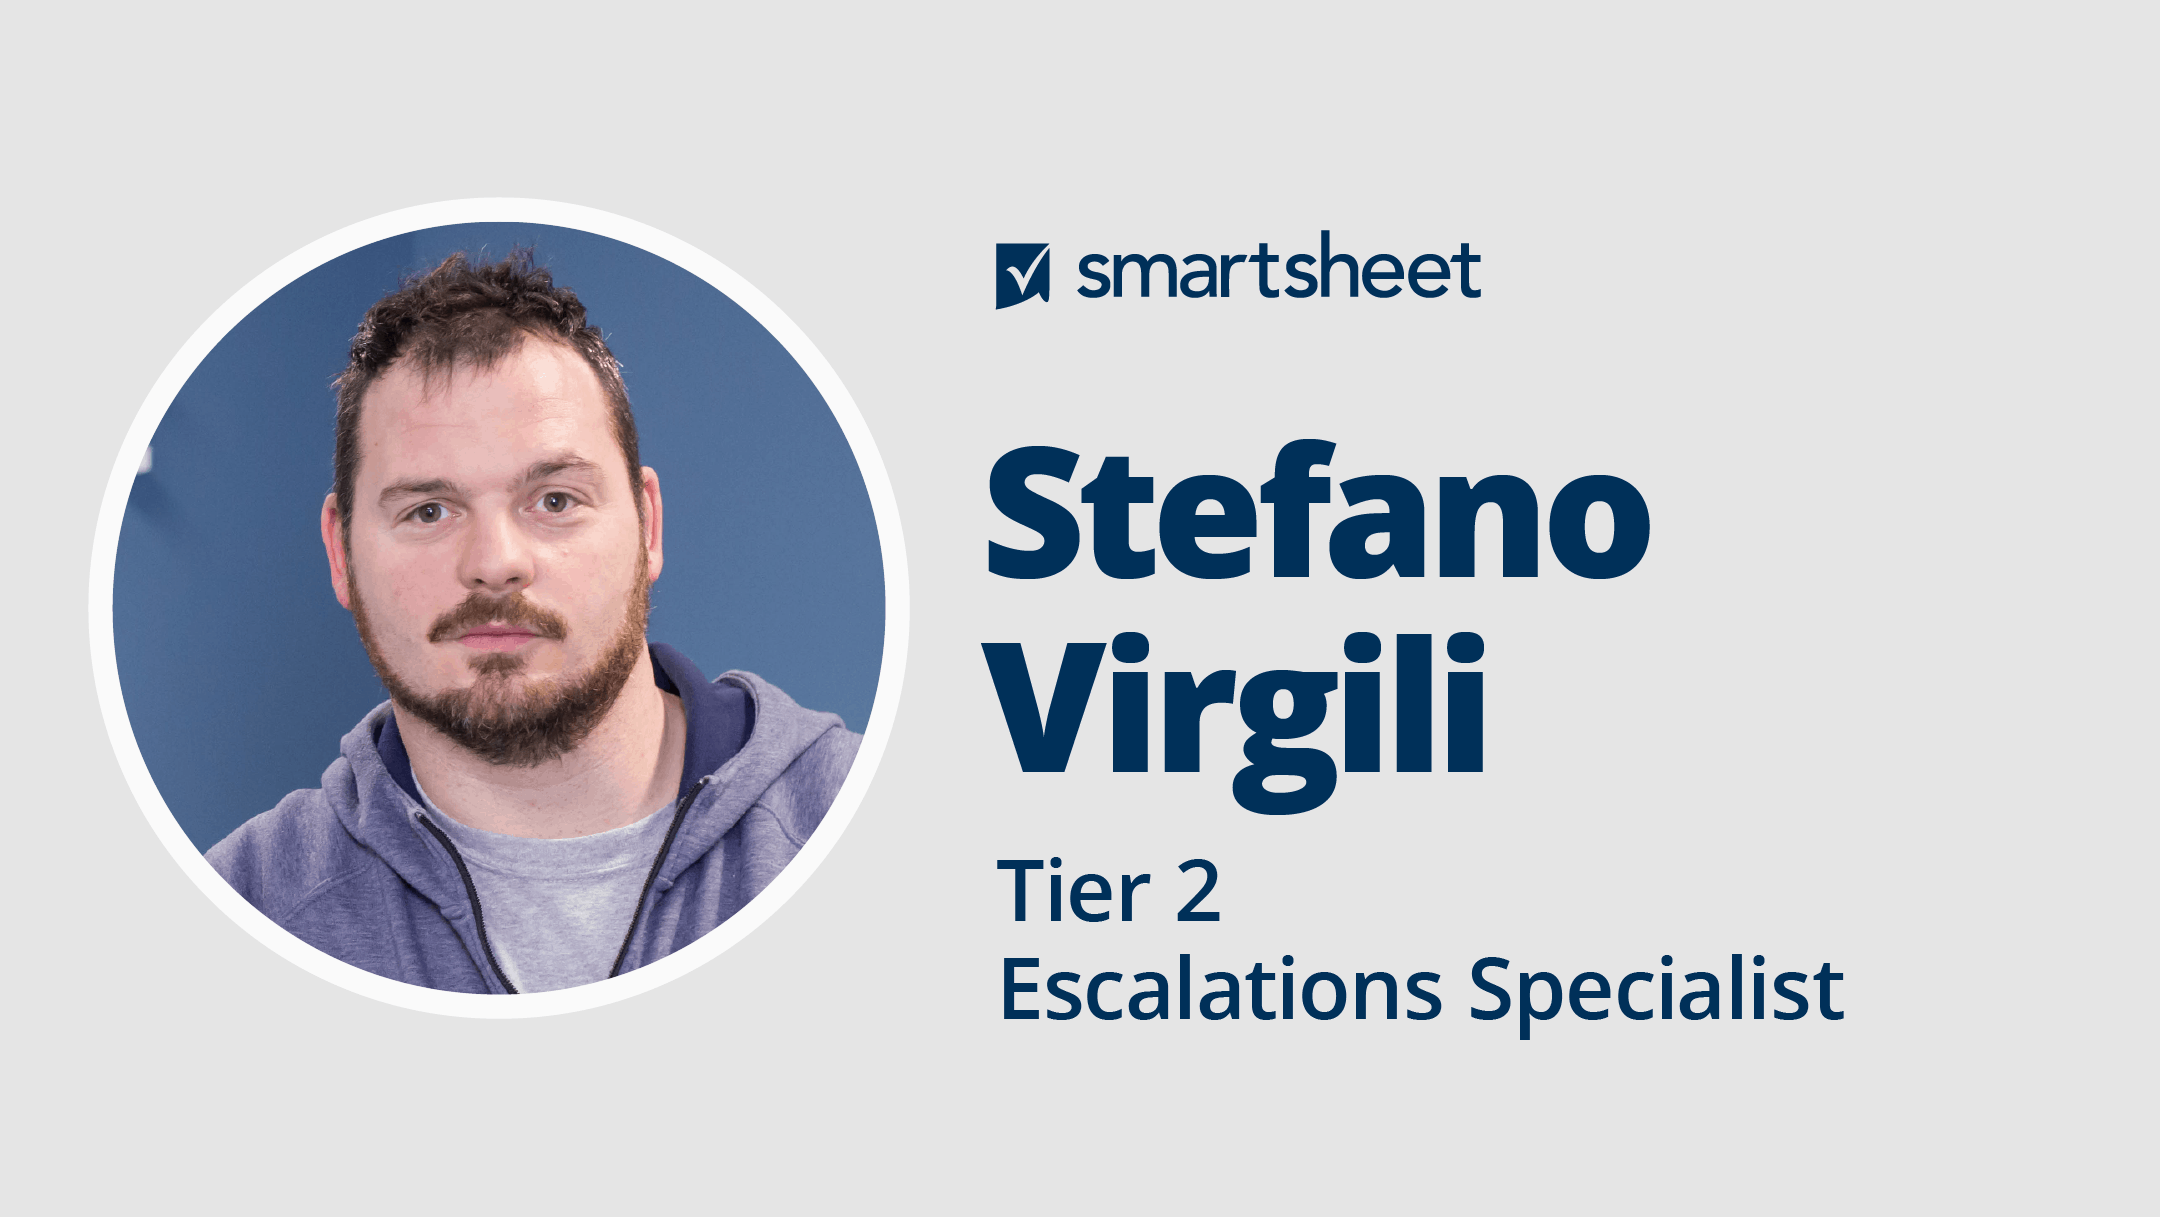 Headshot of Stefano Virgili Tier 2 Escalations Specialist